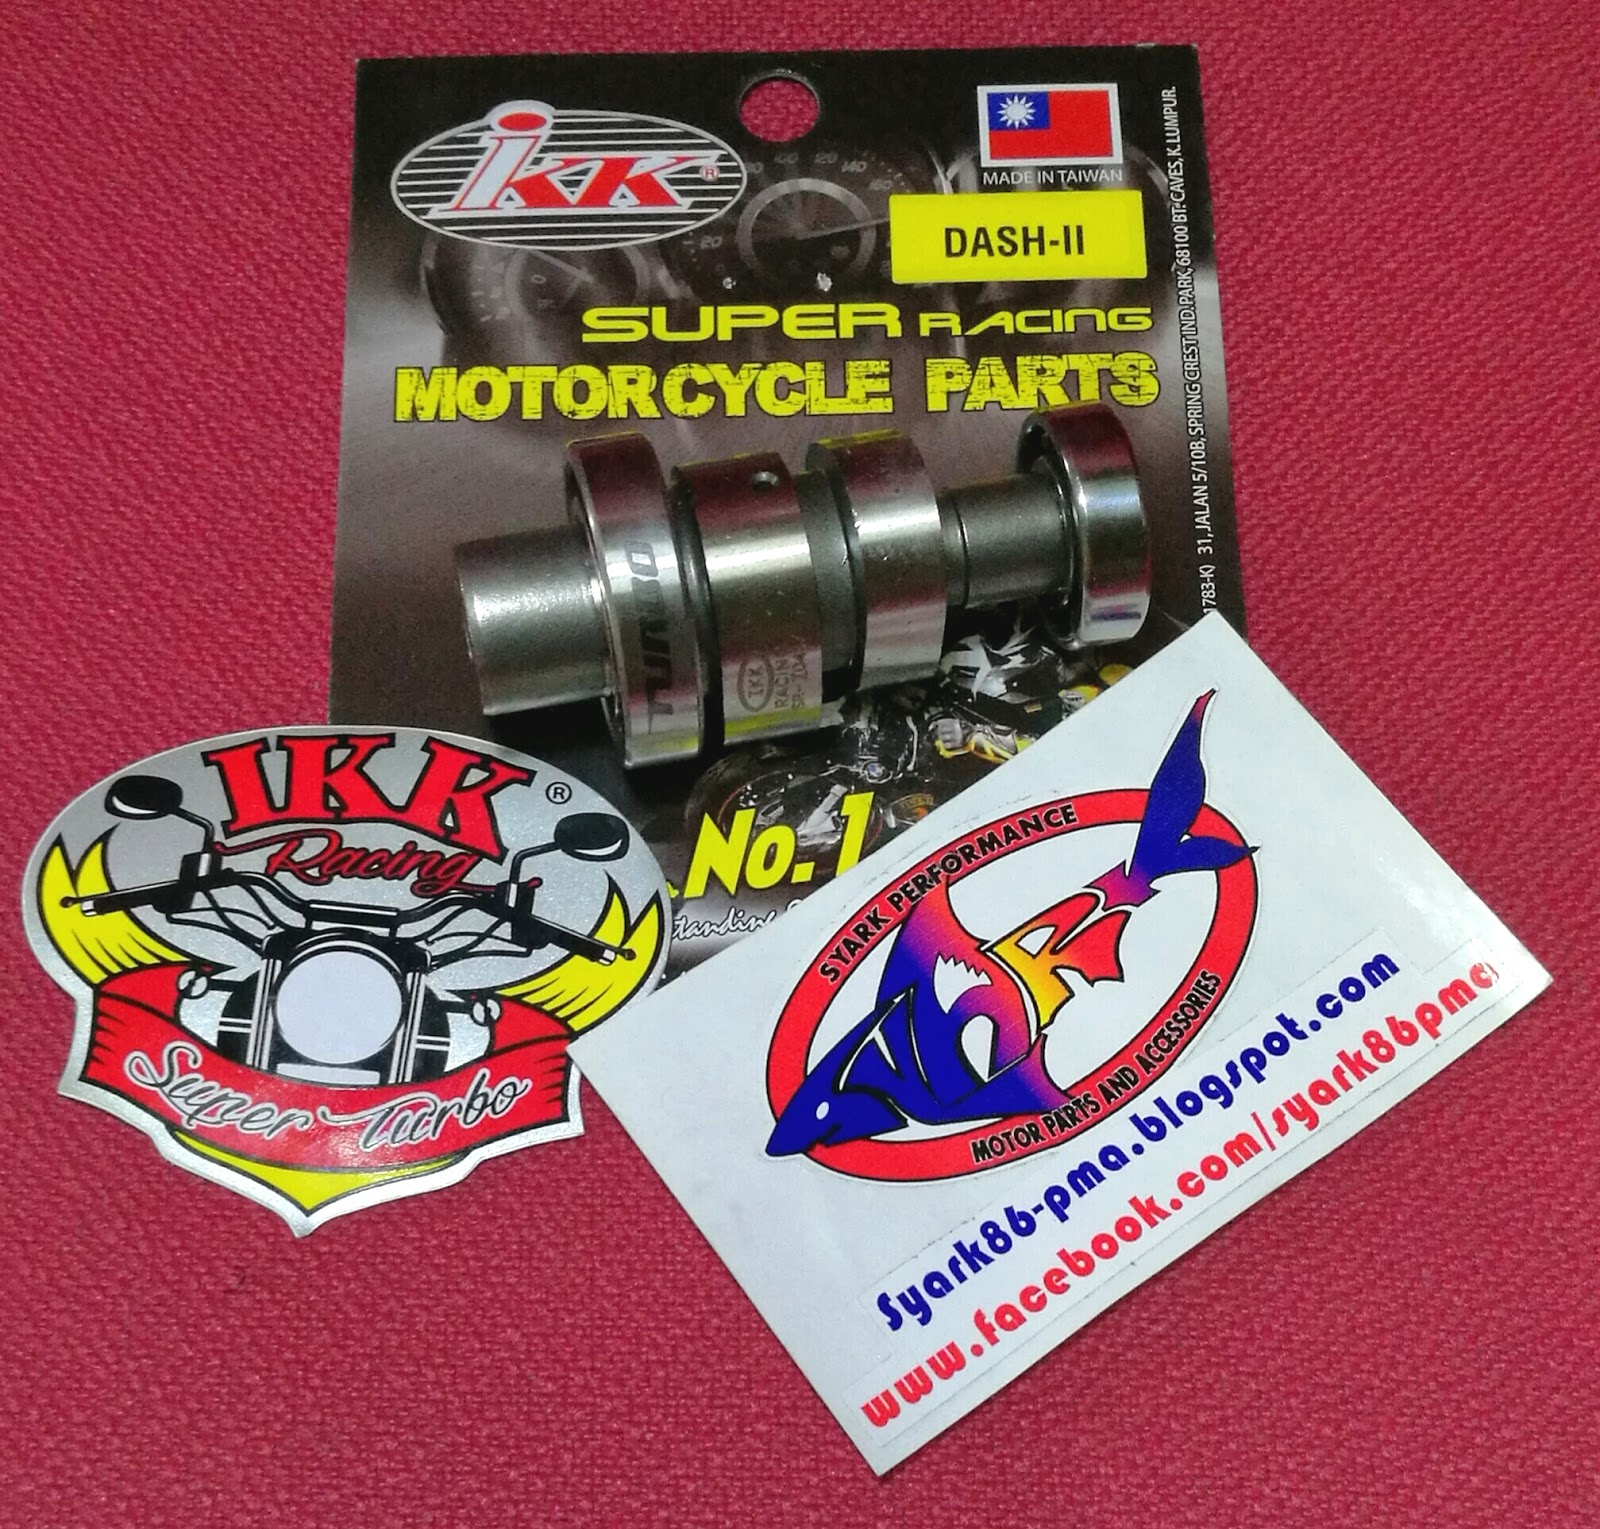 hight resolution of new ikk racing camshaft w bearings honda wave dash v2 wave dash fi wave dx honda wave alpha ex5 dream 110 ex5 dream fi new blade 110 fi new revo 110